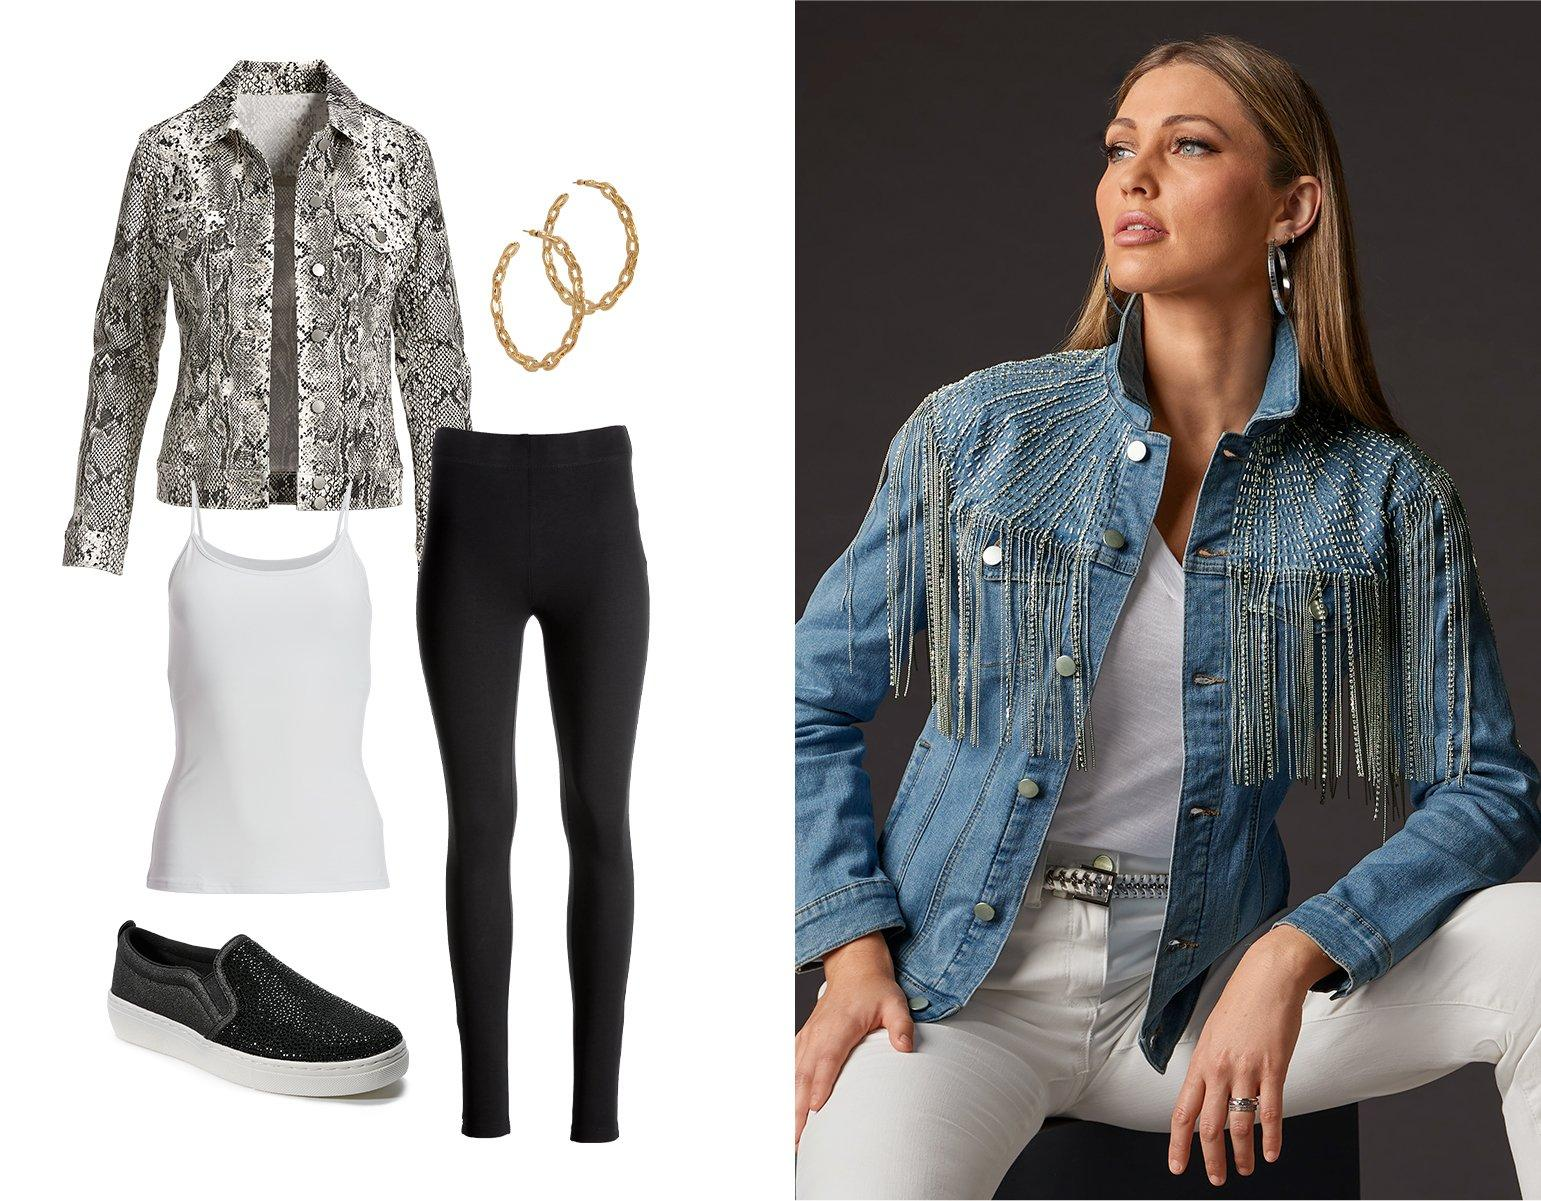 left panel shows a black and white snakeskin print jacket, white camisole, black leggings, black rhinestone embellished slip-on sneakers, and gold hoop earrings. right model wearing a rhinestone fringe denim jacket, white v-neck tee shirt, silver hoop earrings, and white jeans.